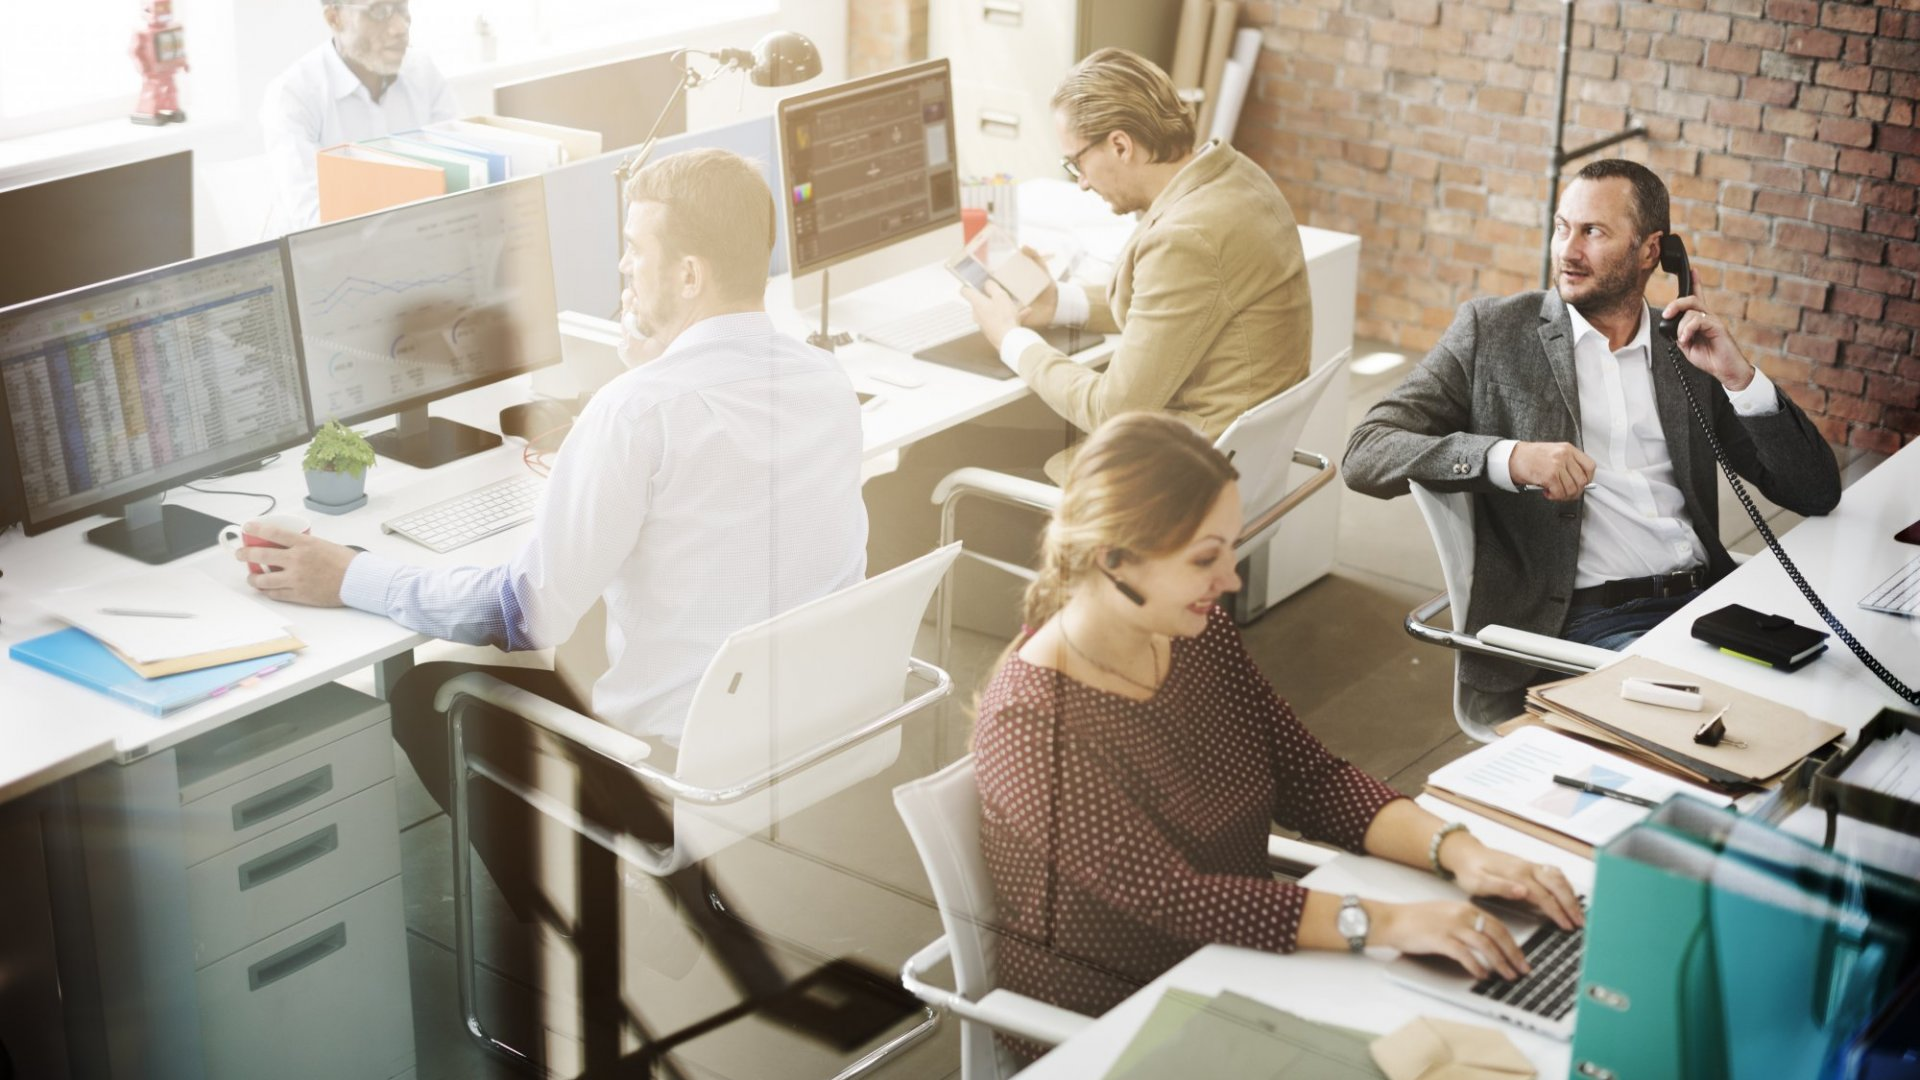 Smart workplaces have the proper technology to improve employee satisfaction